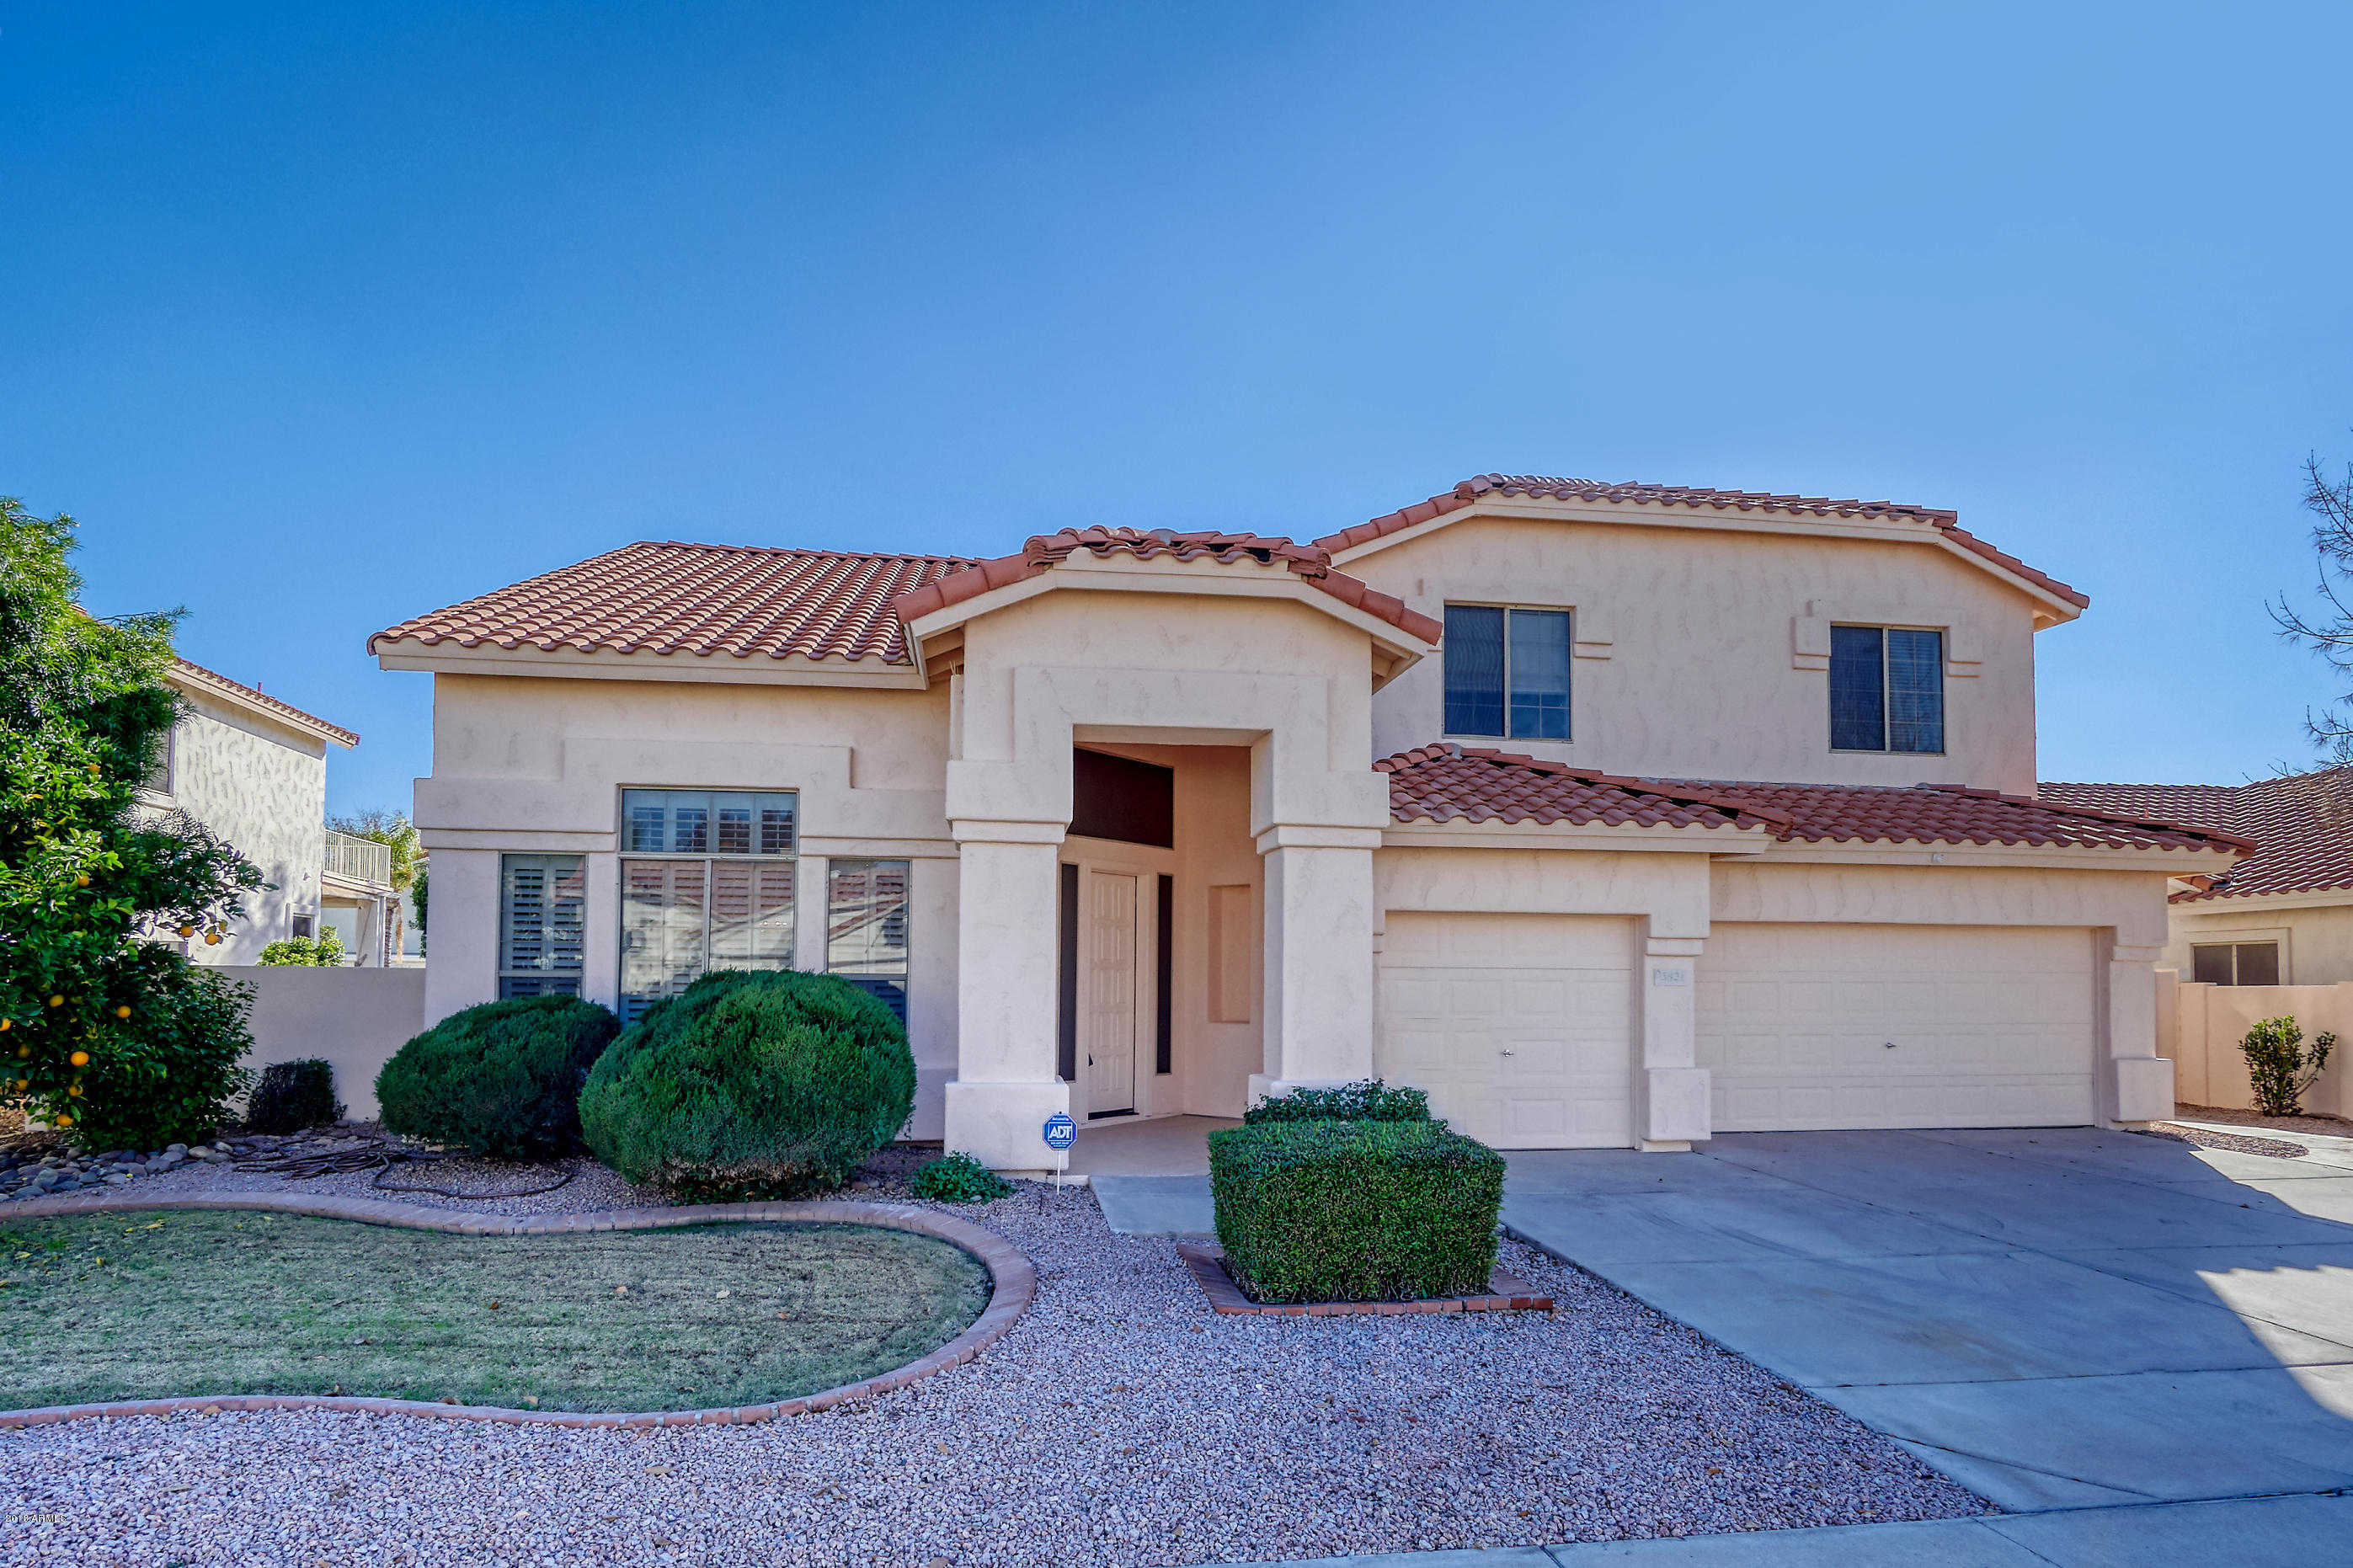 $359,950 - 4Br/3Ba - Home for Sale in Mission Groves 3 At Marshall Ranch, Glendale